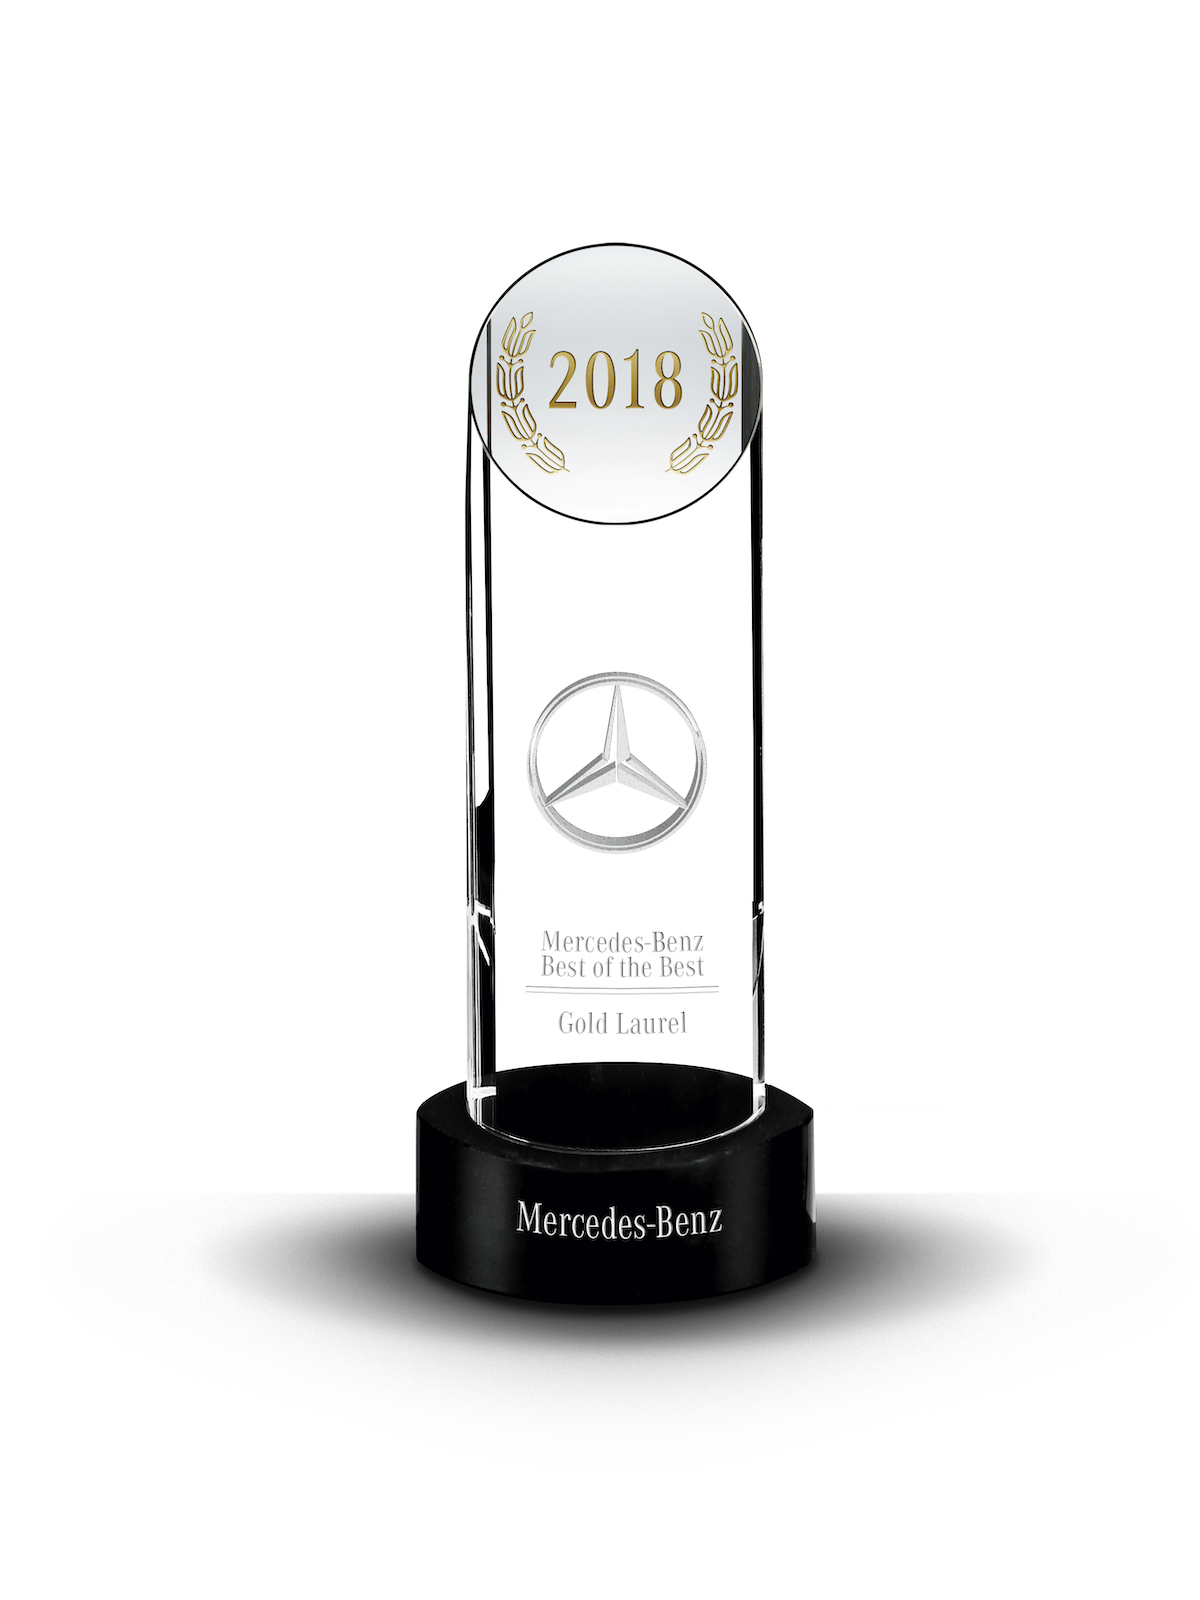 2018 Mercedes-Benz Best of the Best Gold Laurel Award